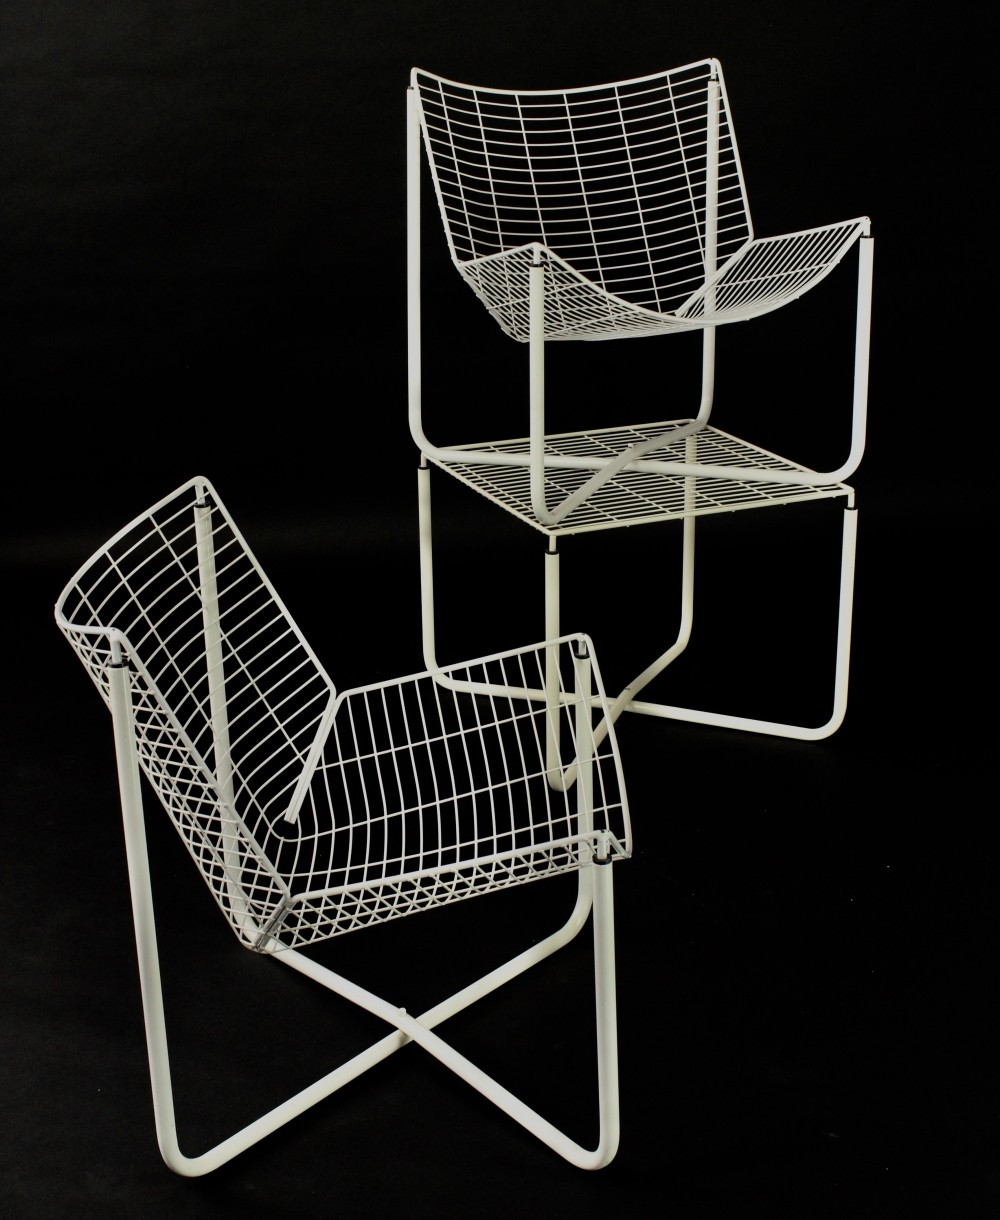 Järpen seating group by Niels Gammelgaard for IKEA, 1980s